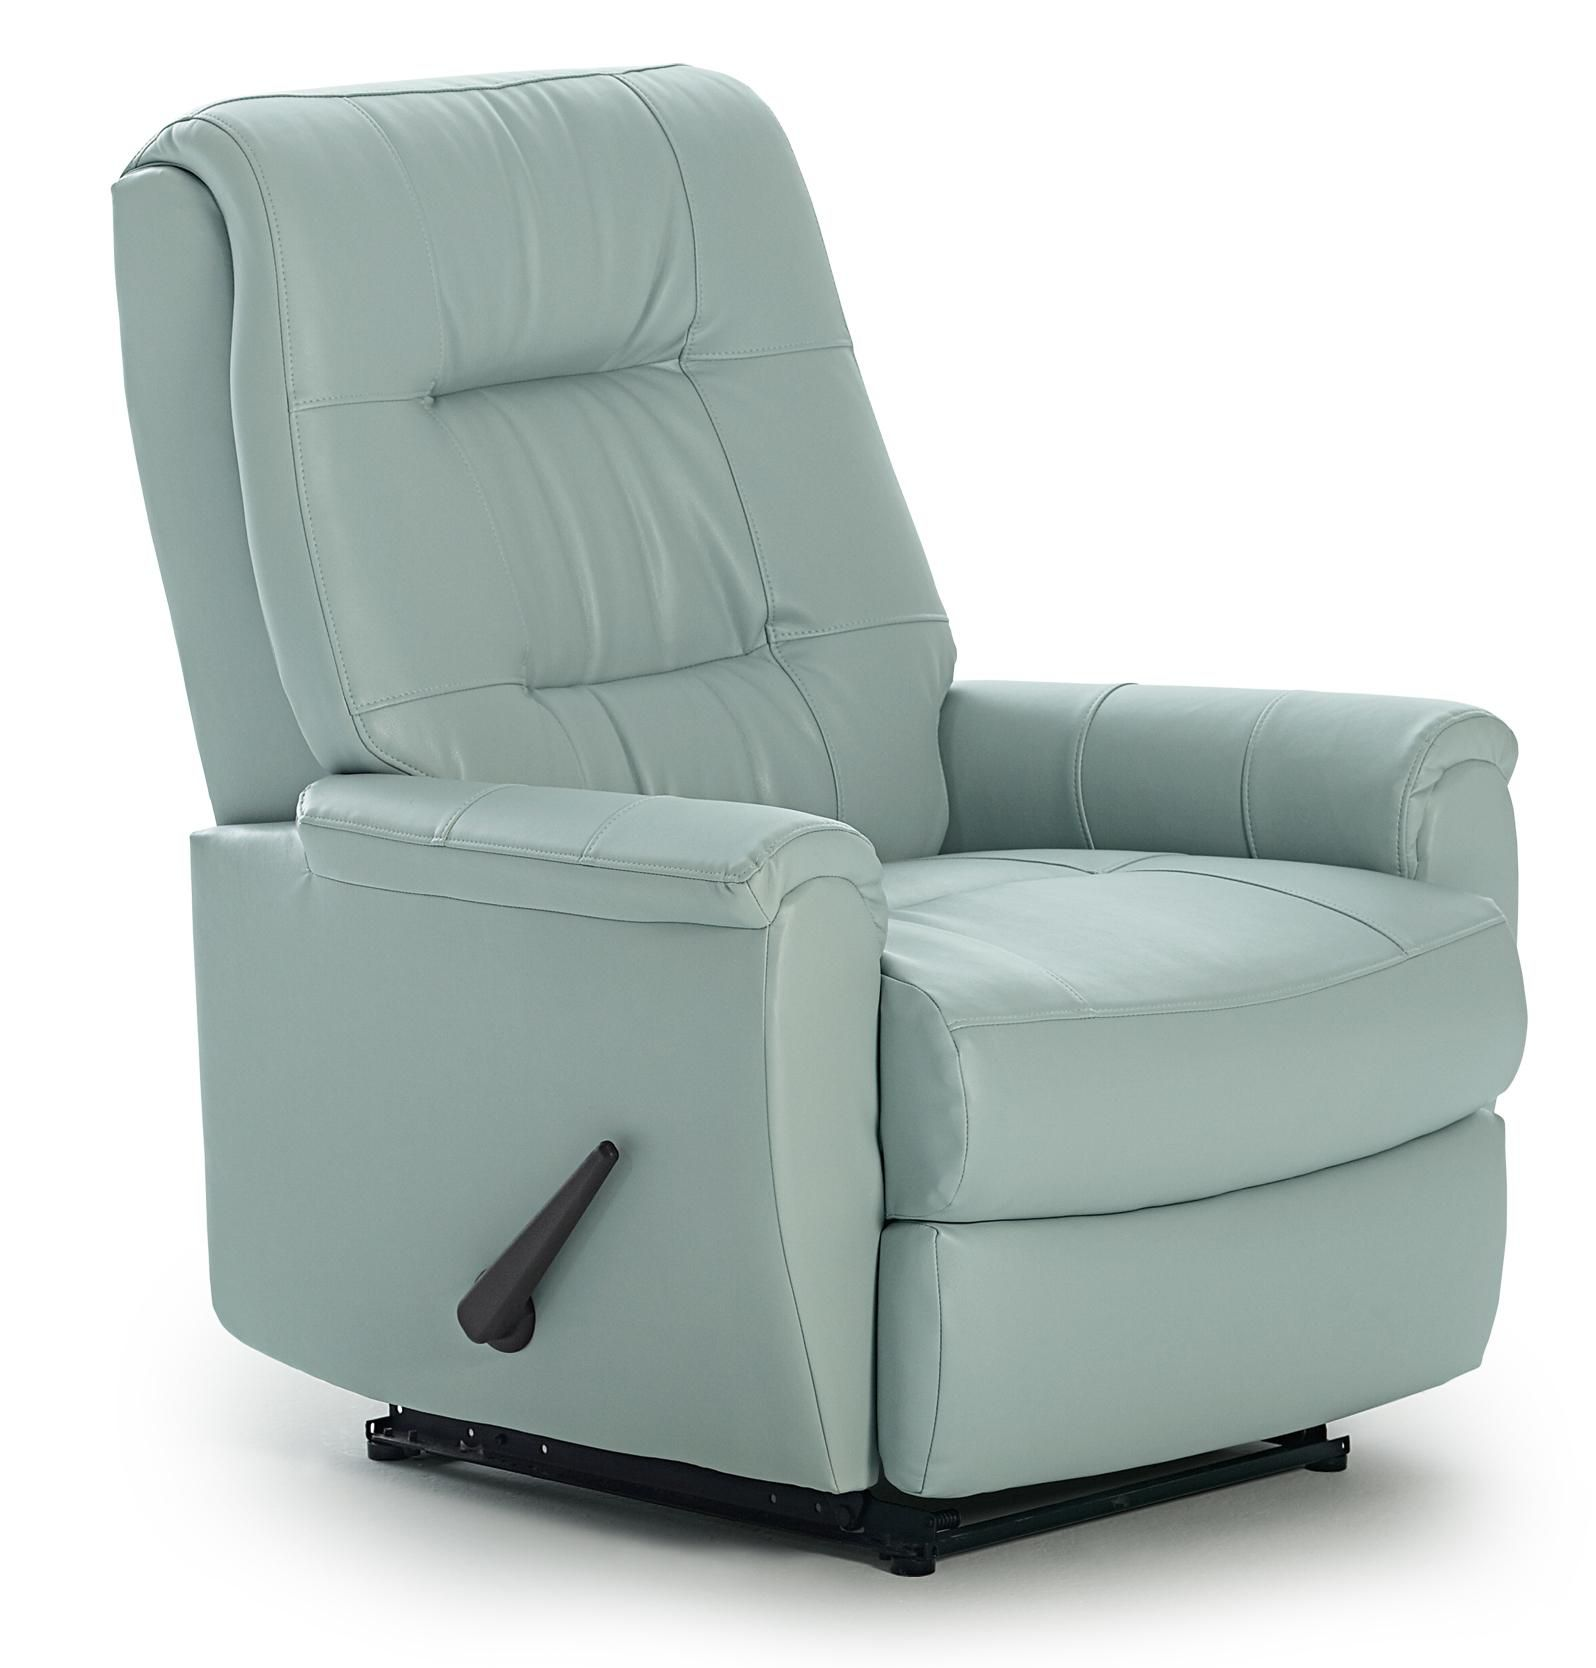 mag recliner rocker small chair swivel concept things different home your regarding sofa chairs